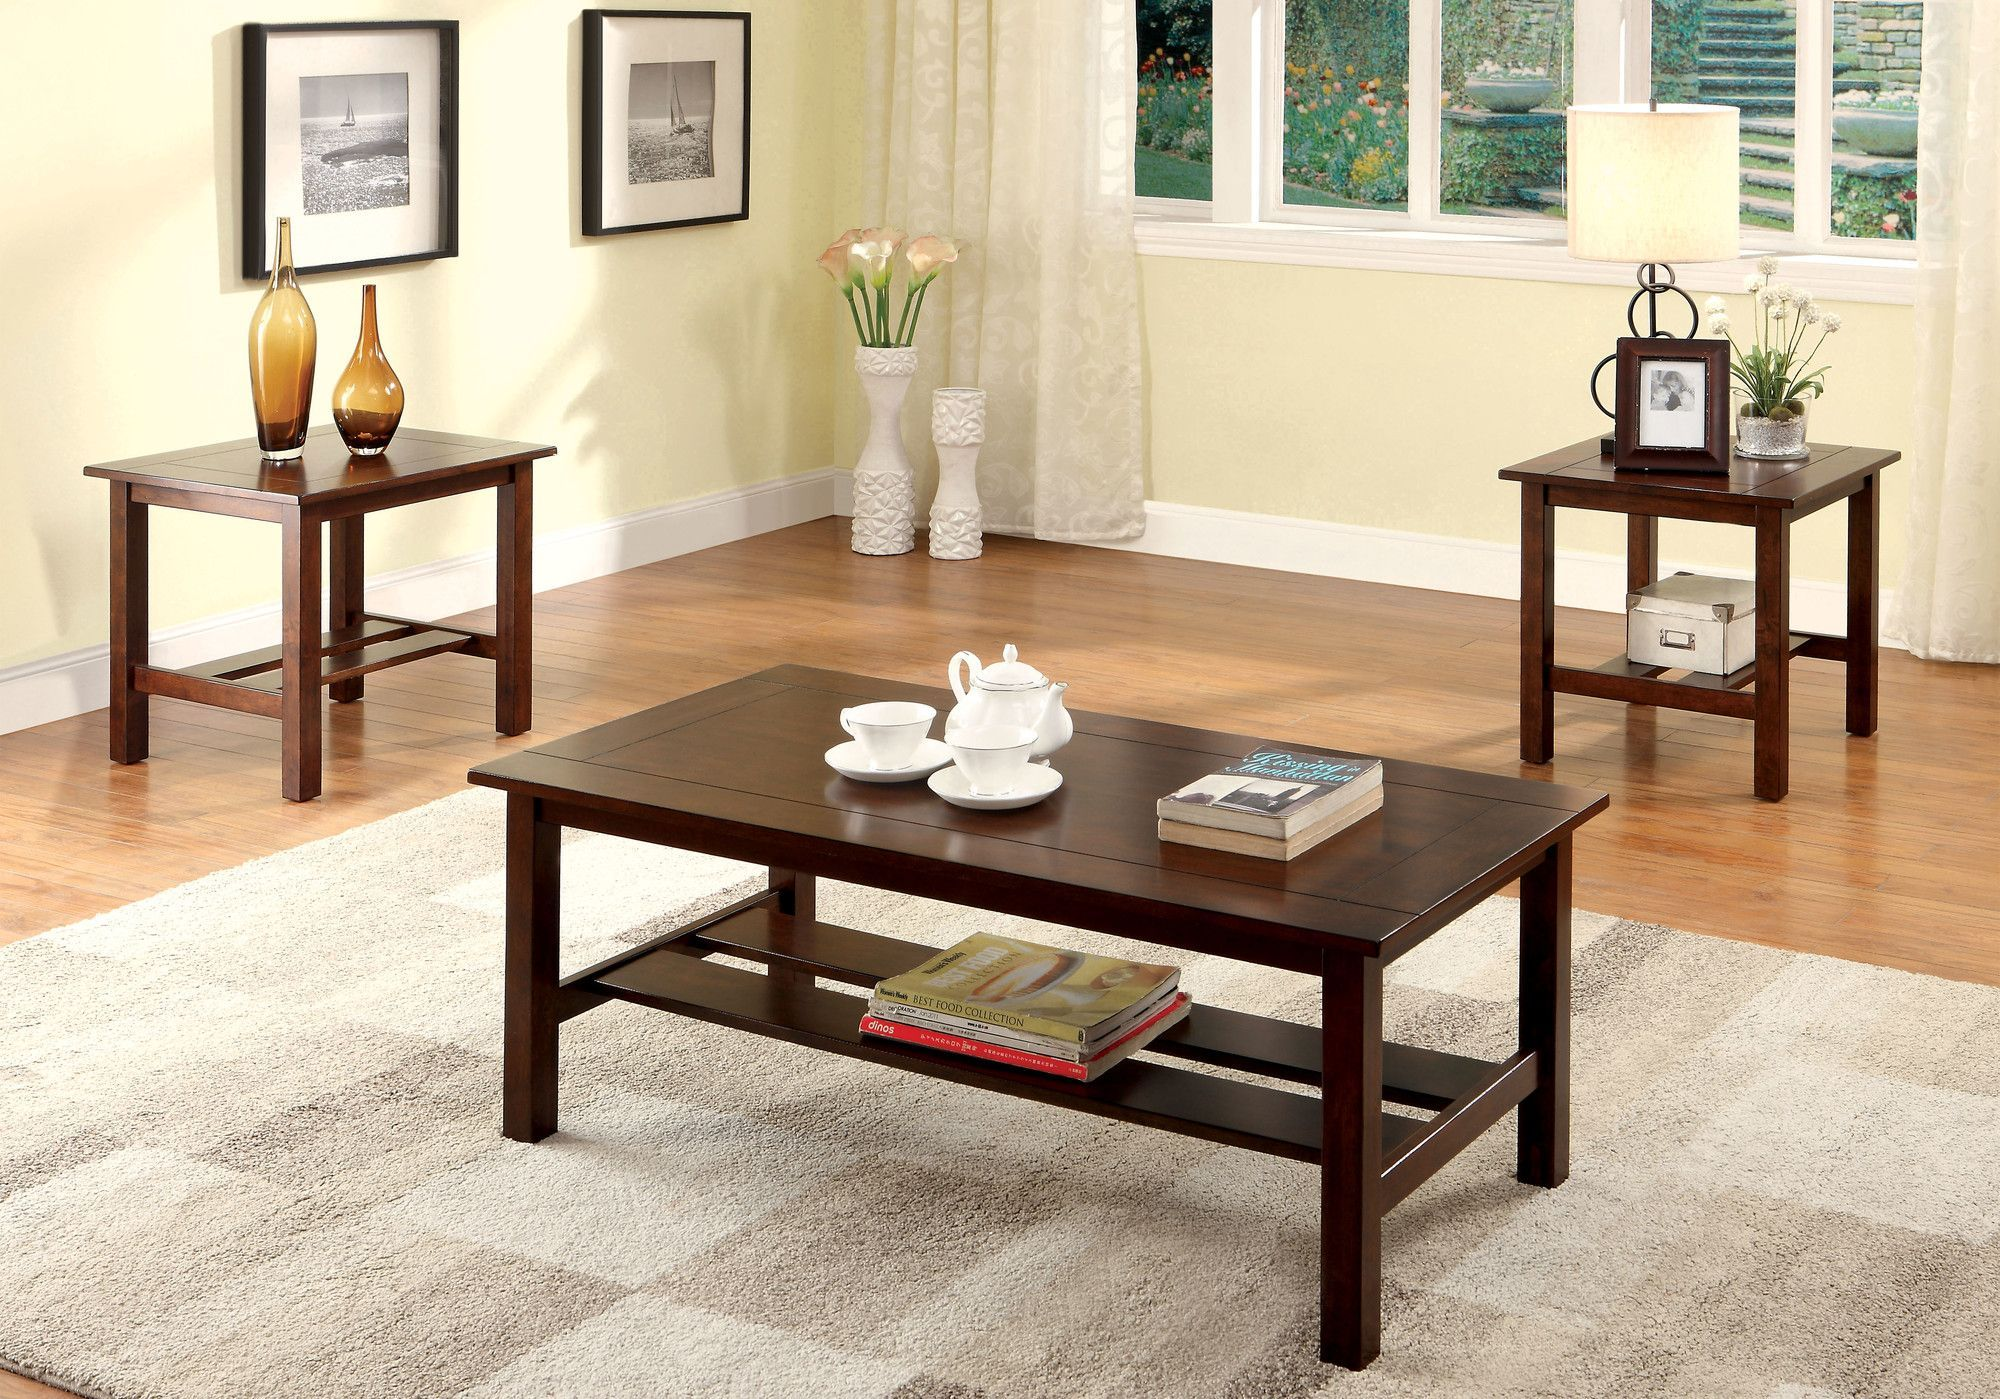 Klohe 3 Piece Coffee Table Set Products Pinterest